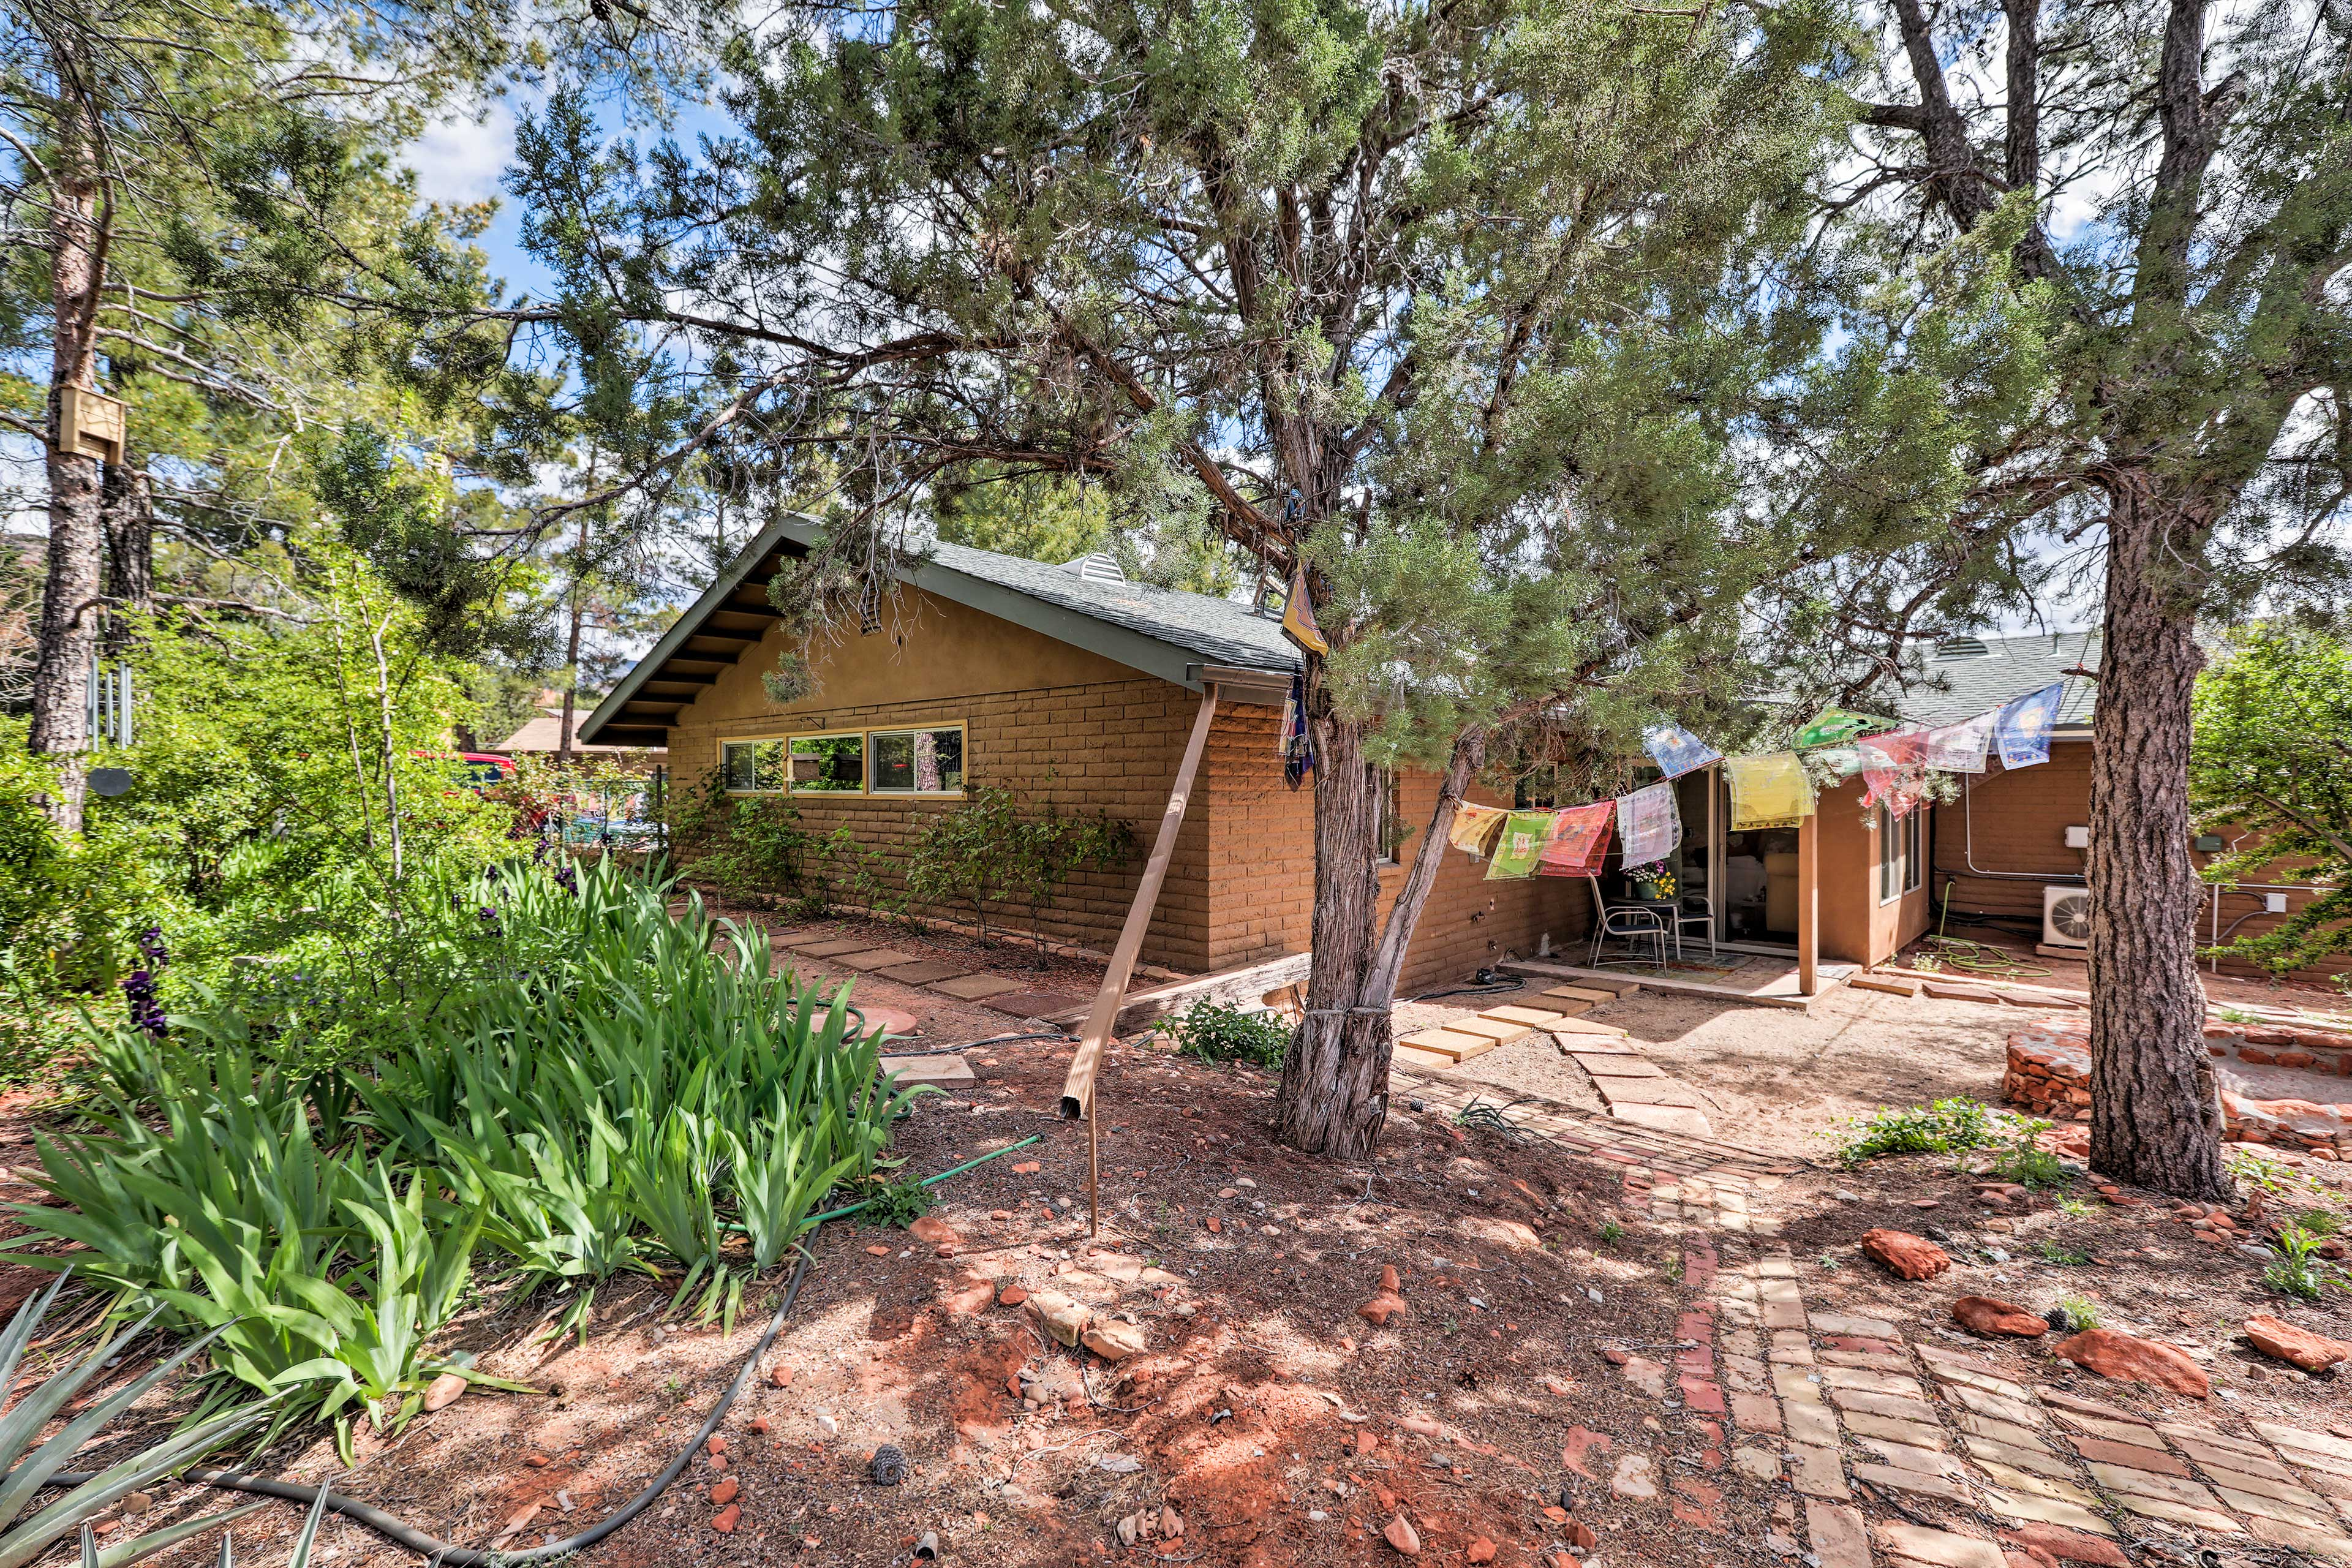 This vacation rental property is located 2.5 miles from Uptown Sedona.